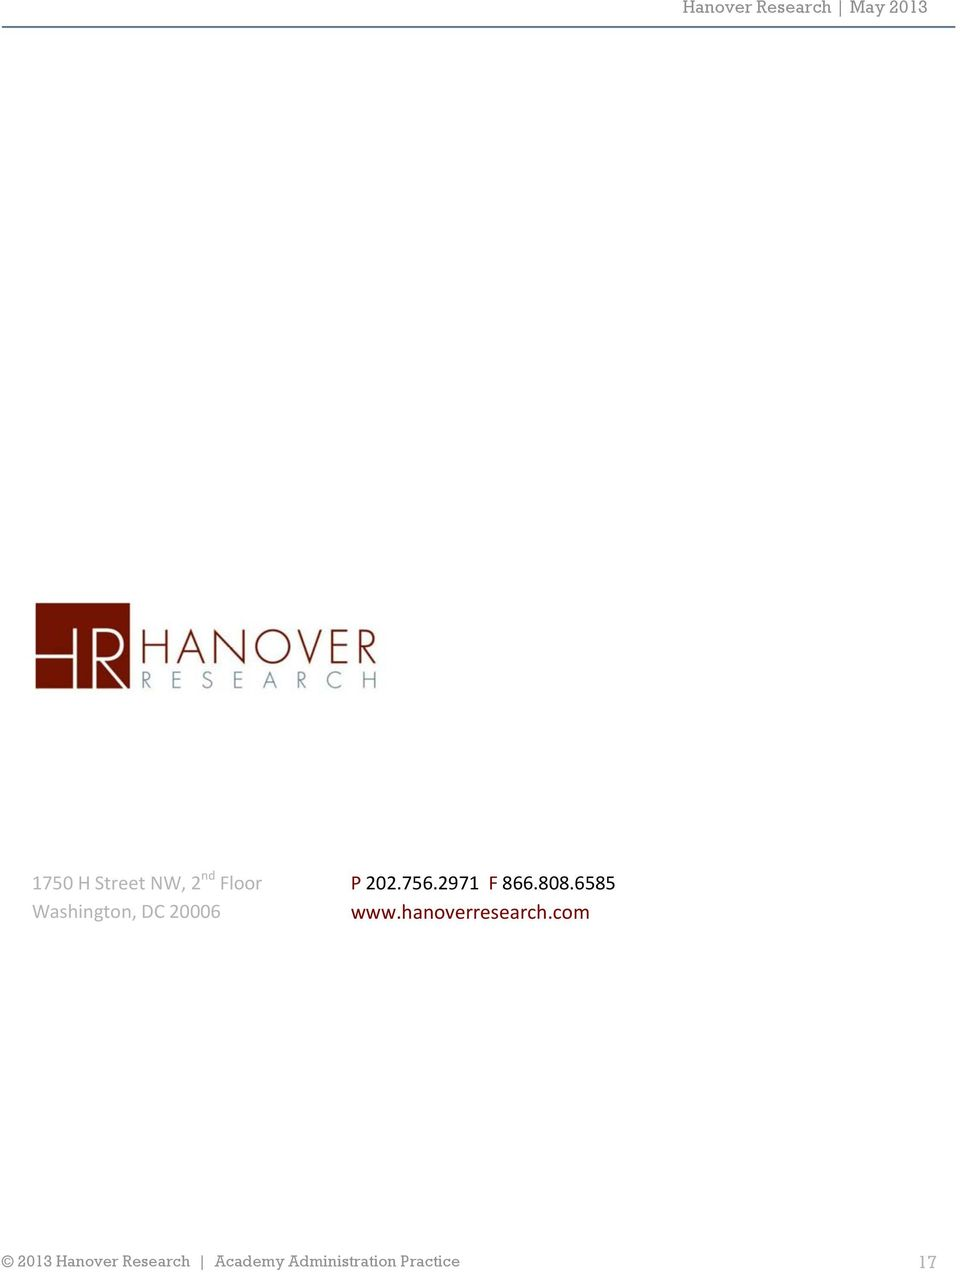 2971 F 866.808.6585 www.hanoverresearch.